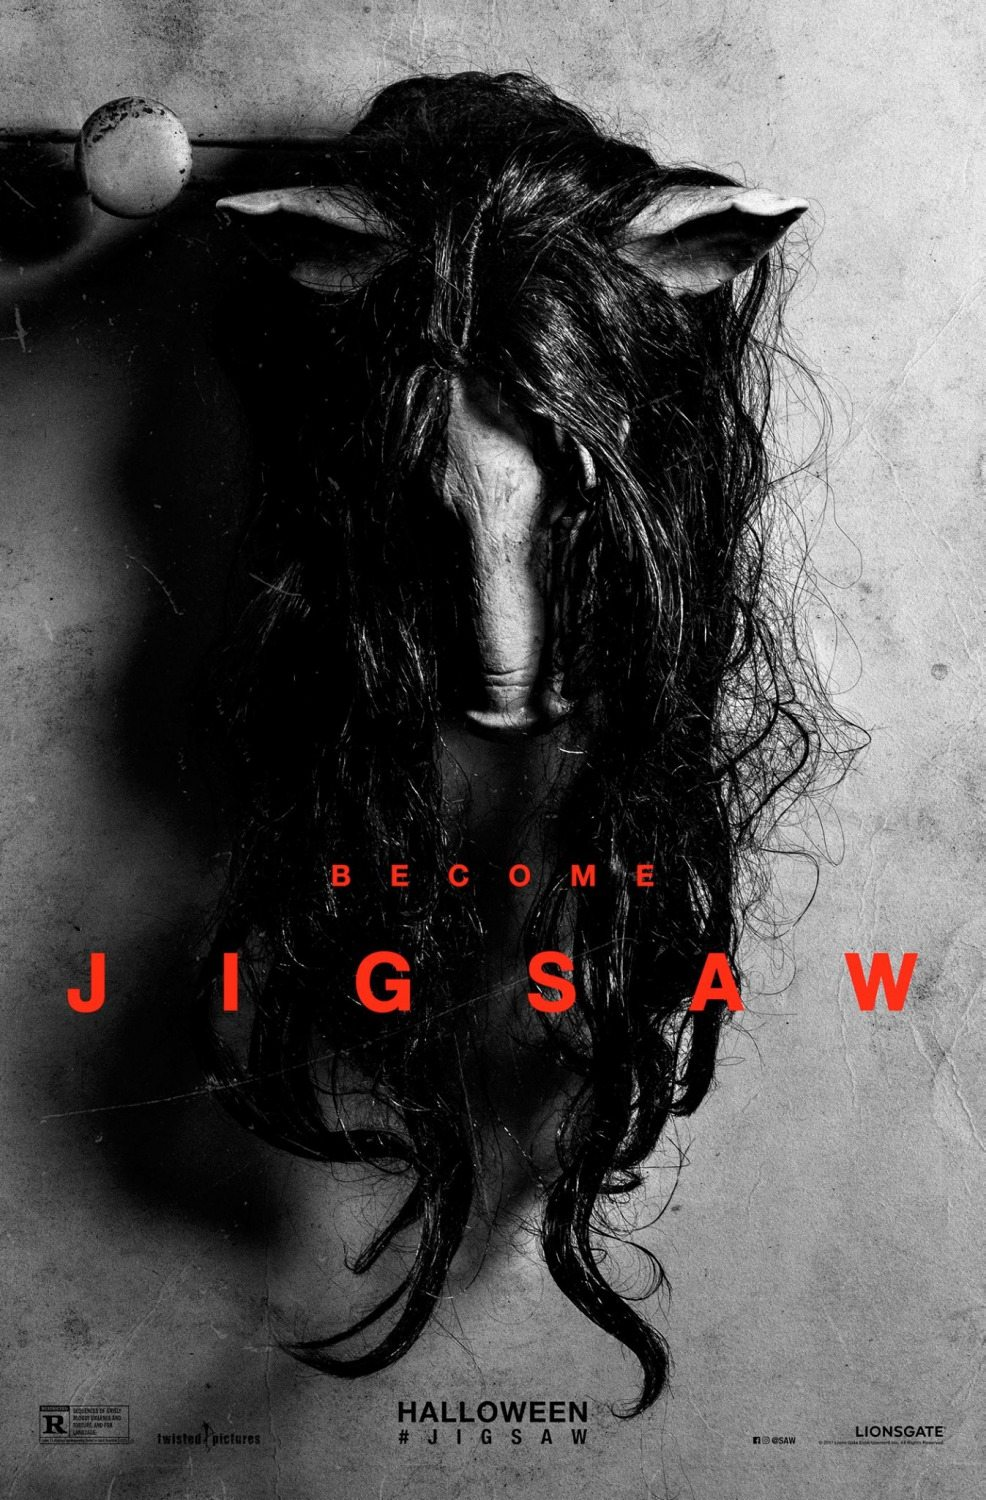 jigsaw poster - Here are Six Minimalistic Character Posters For Jigsaw